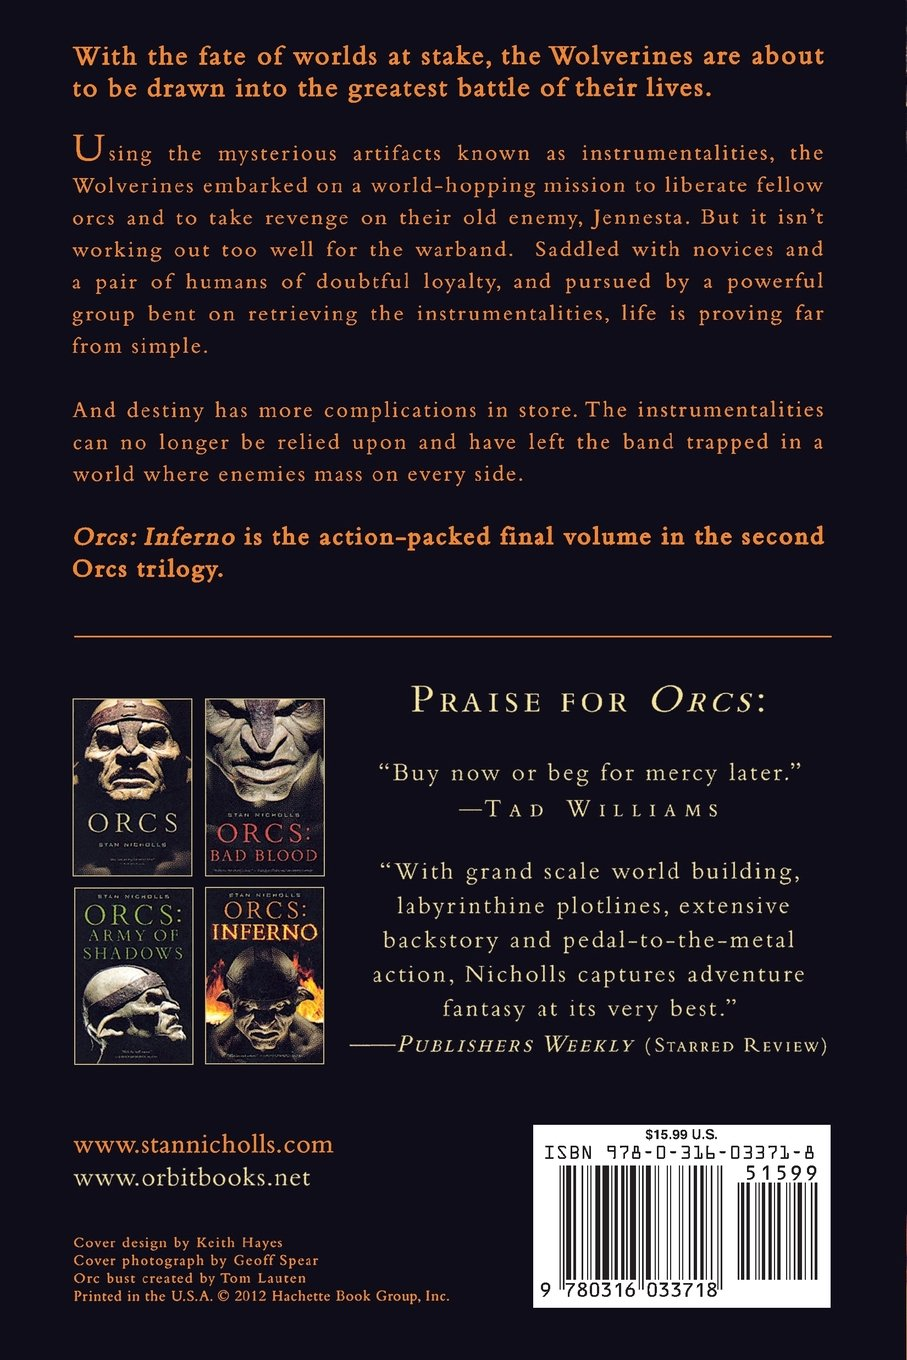 Orcs: Inferno: Stan Nicholls: 9780316033718: Amazon com: Books